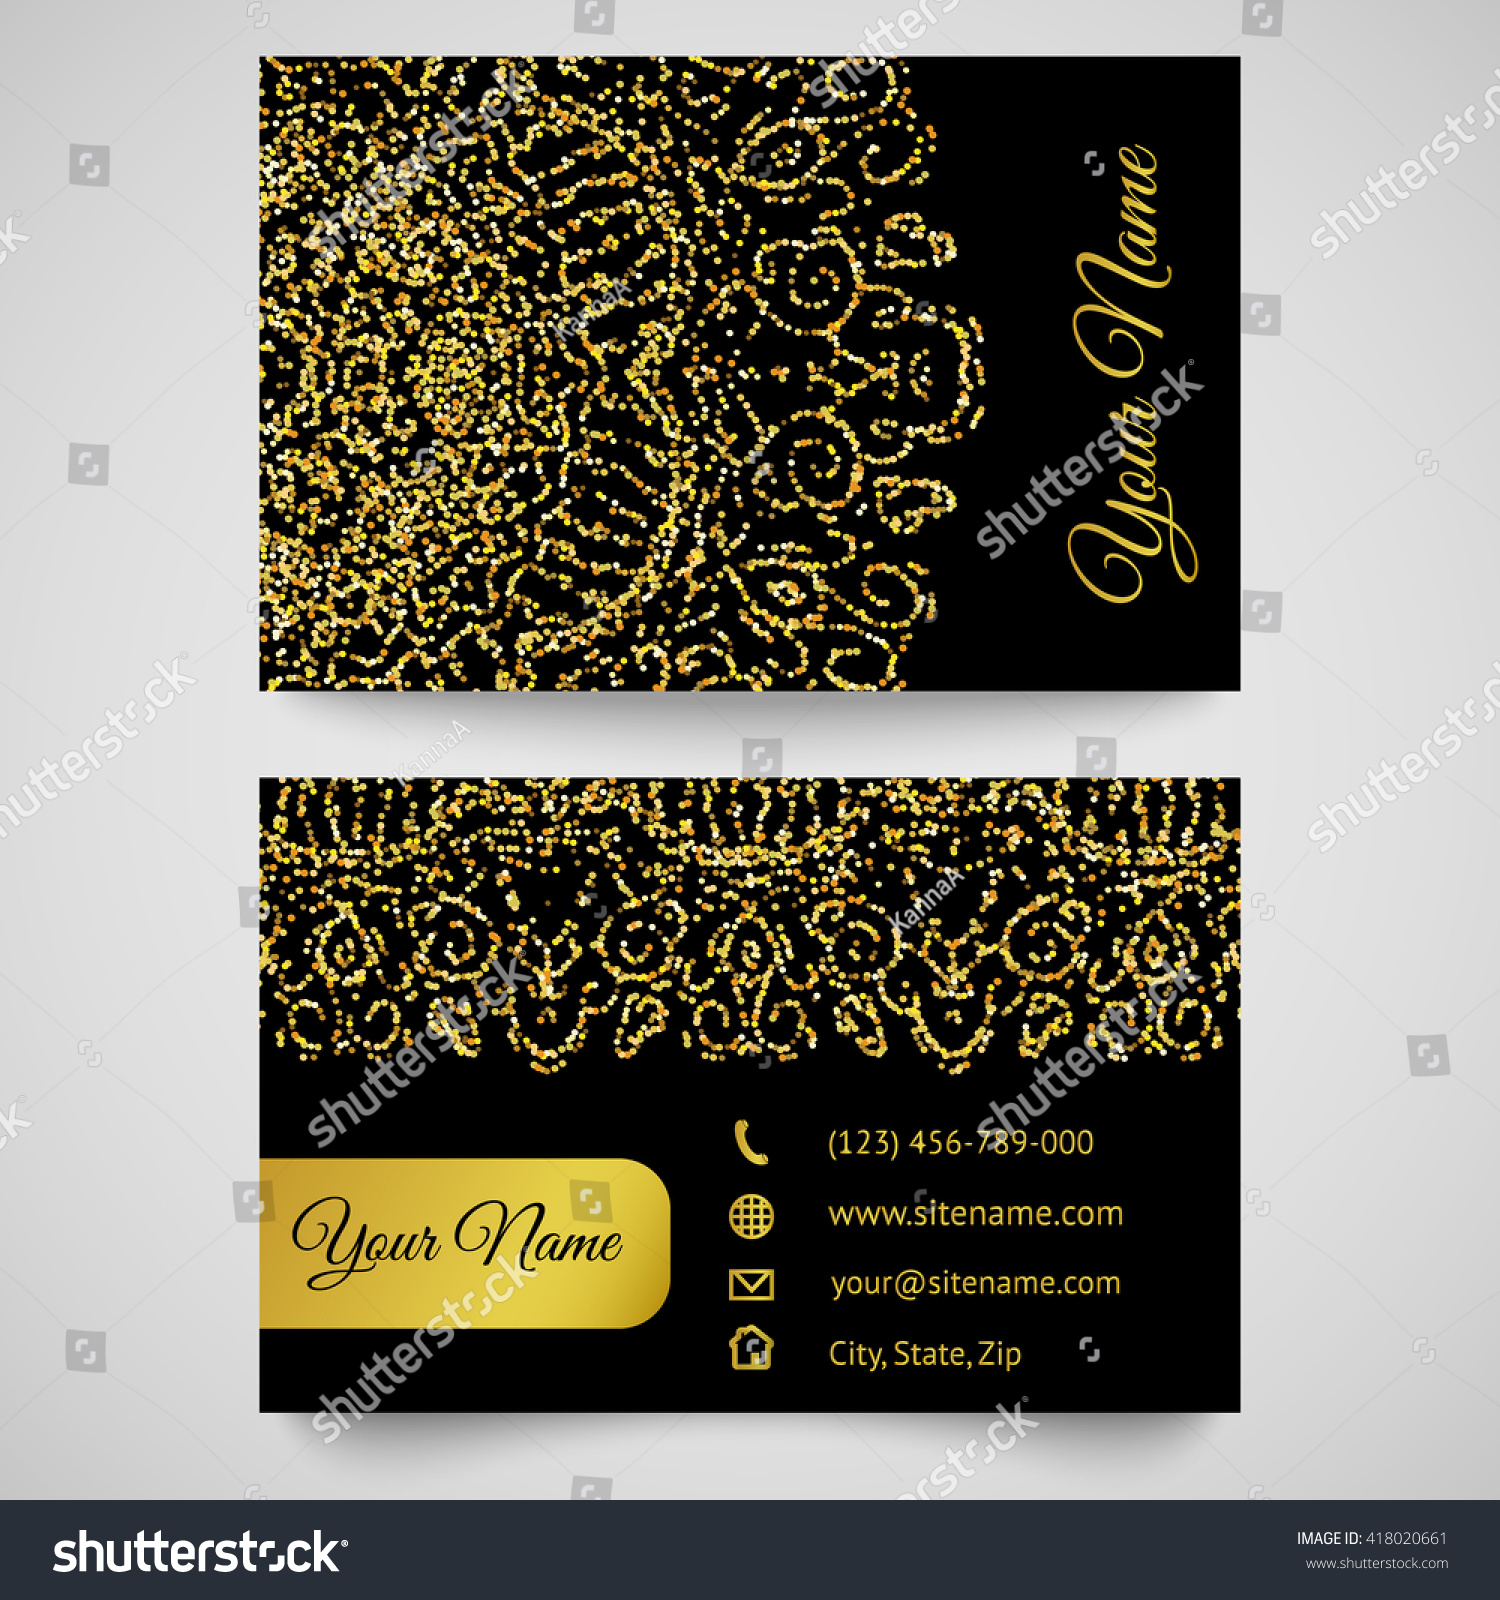 gold business card template bright golden stock illustration 418020661 shutterstock. Black Bedroom Furniture Sets. Home Design Ideas